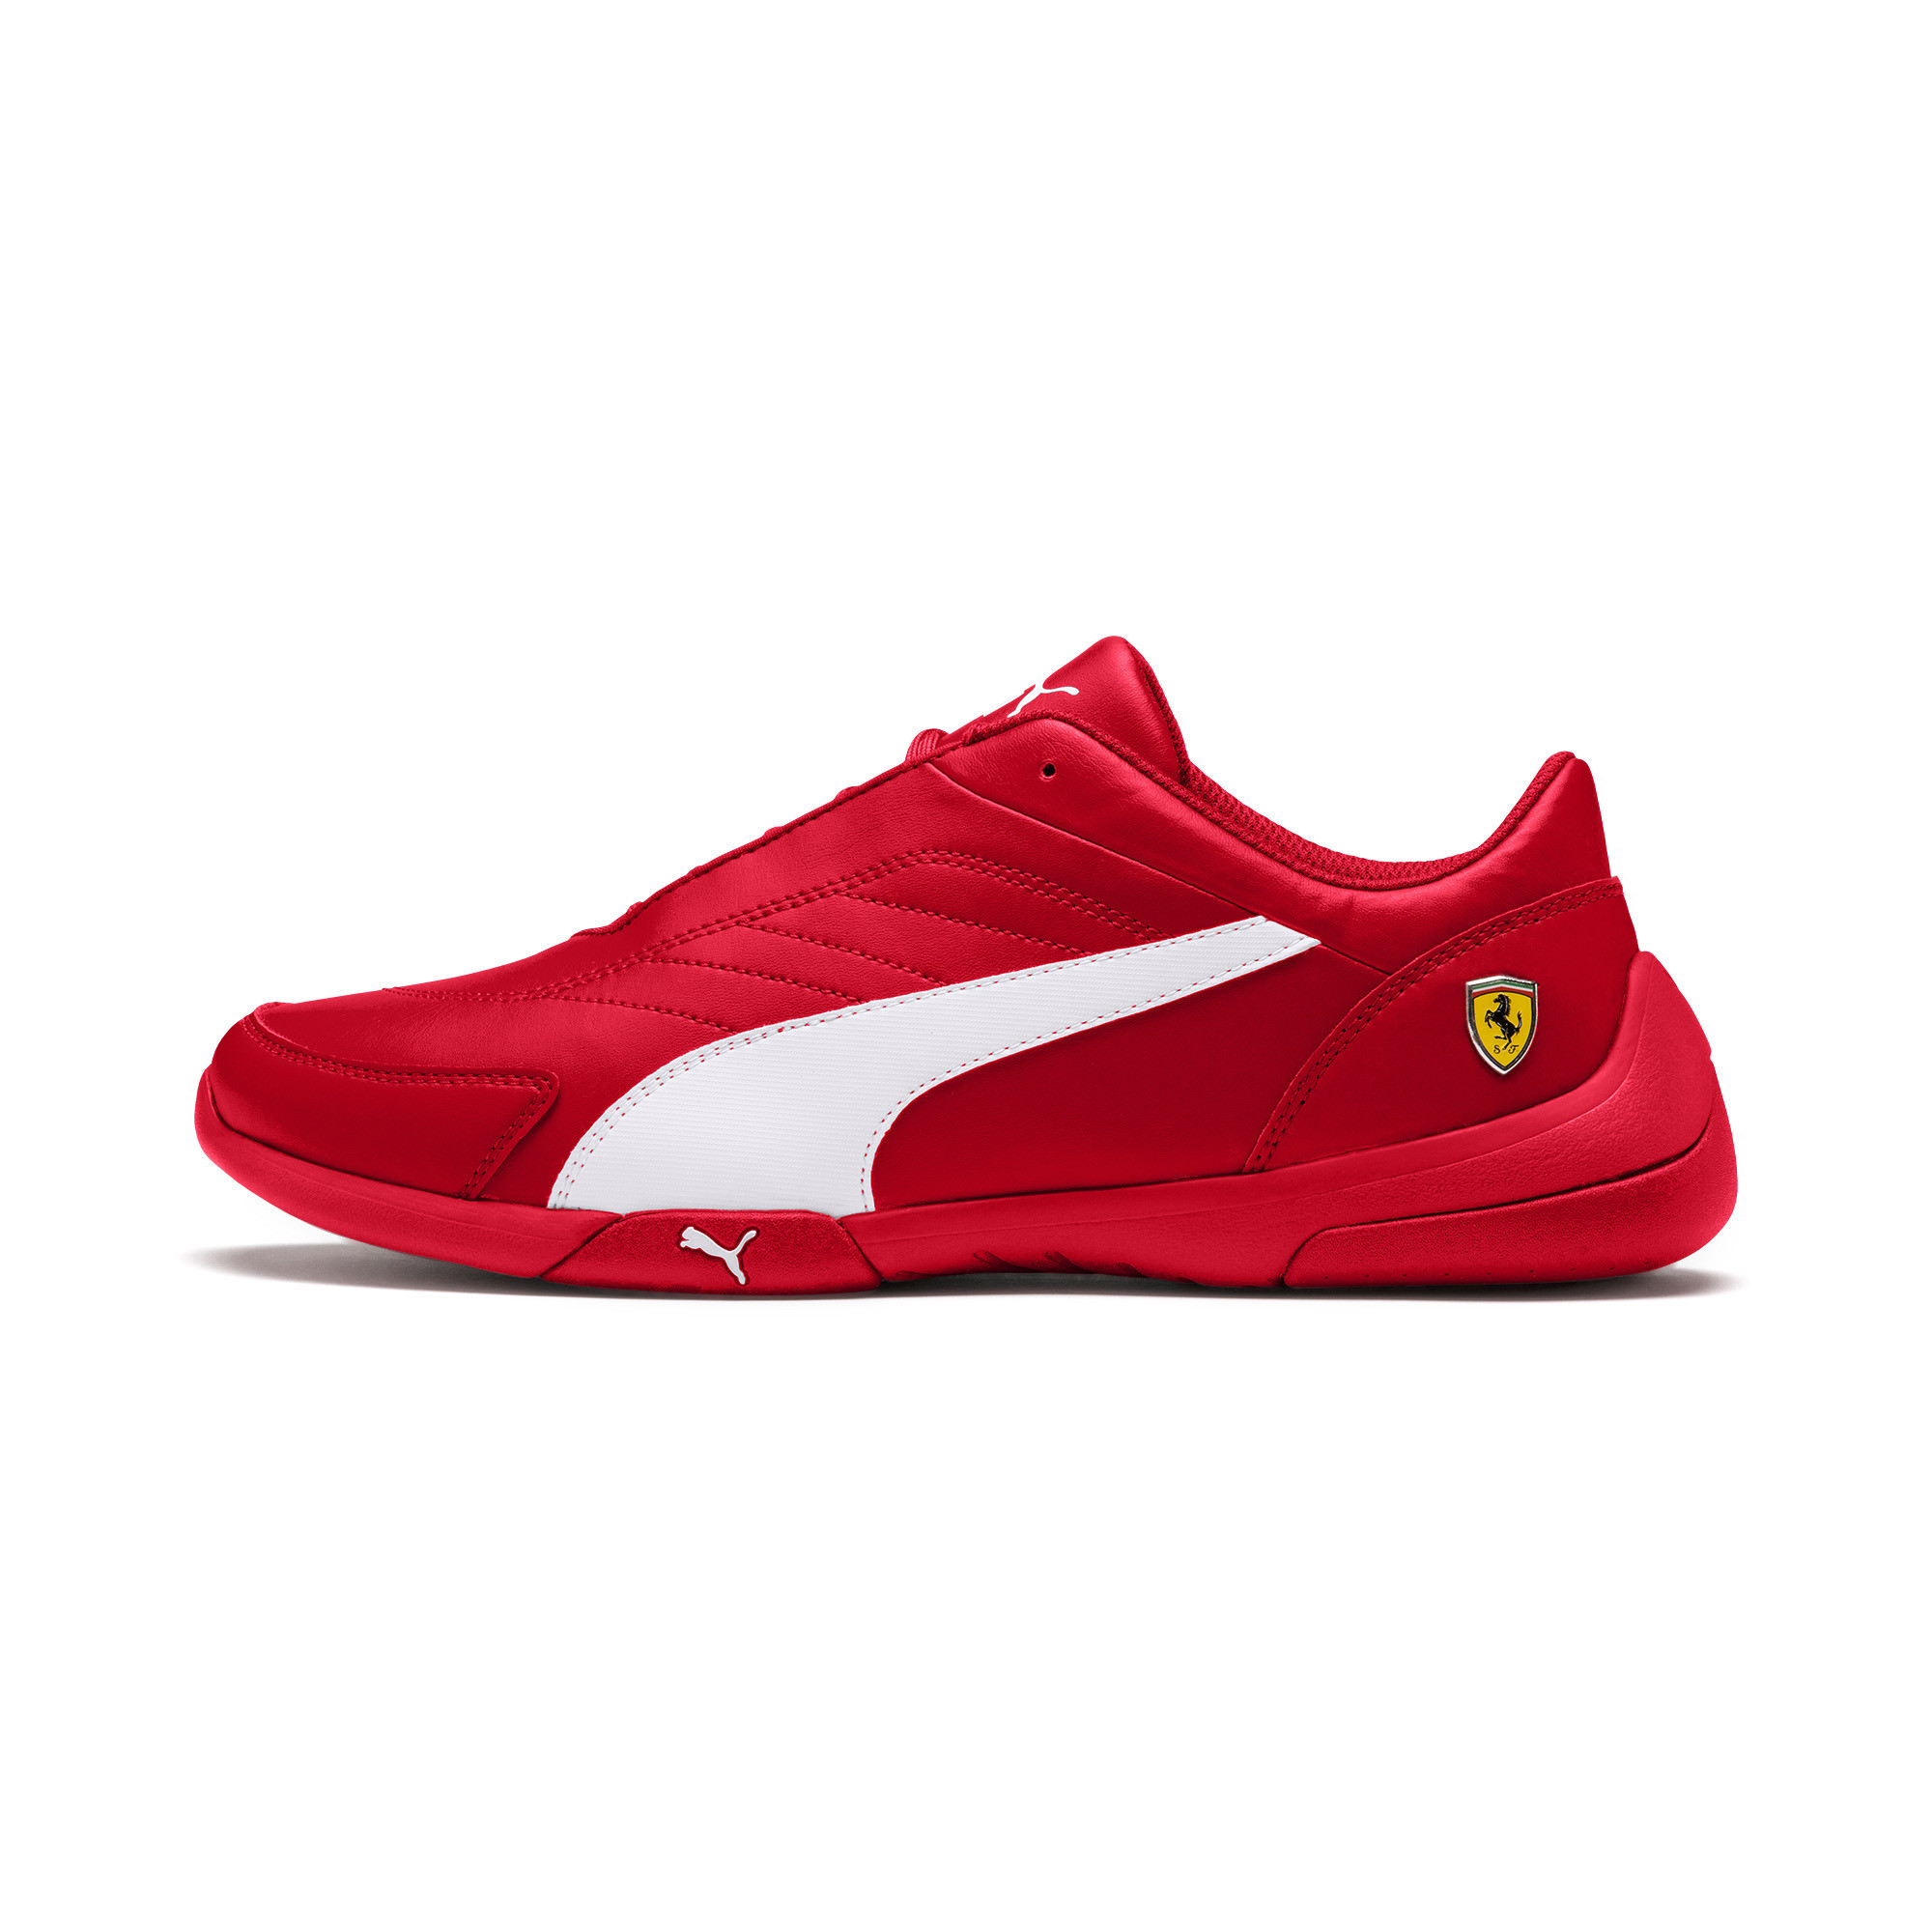 puma ferrari shoes indonesia